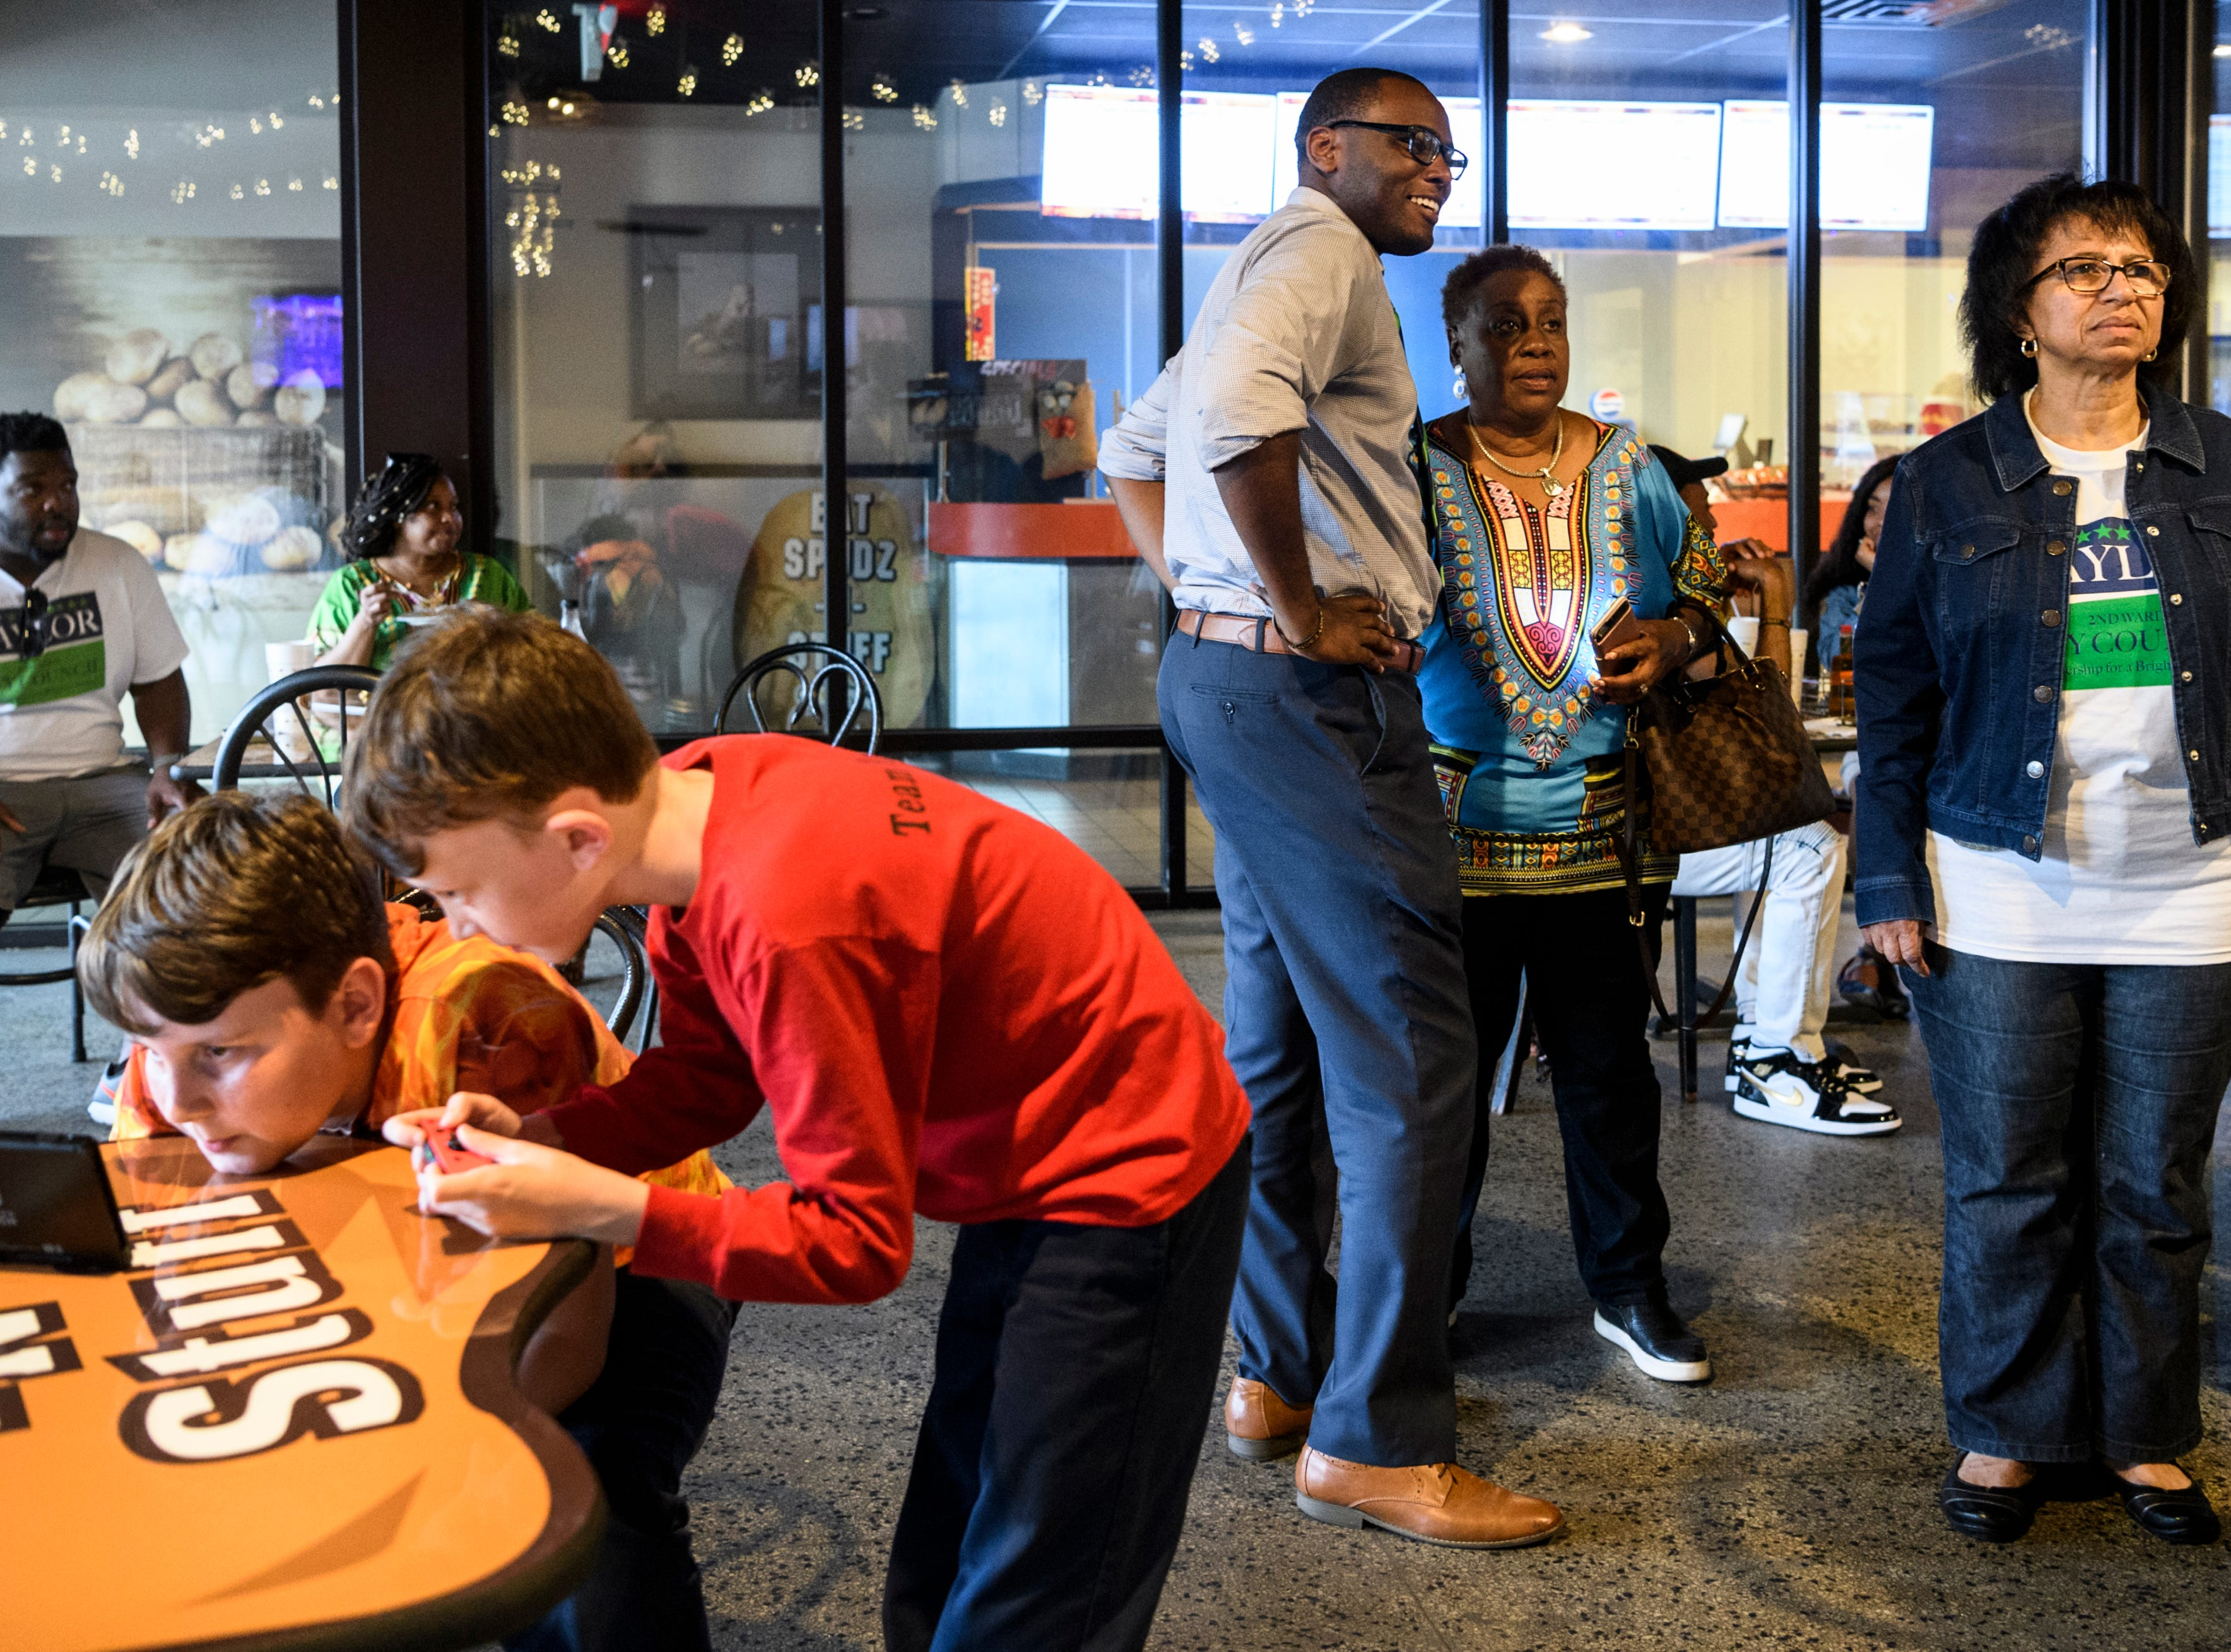 Sam, from left, and Peter Ungar, lay a game on their Nintendo Switch as D'Angelo Taylor, a second ward city council candidate, watches election results with Connie Robinson and others at Spudz-N-Stuff on Washington Avenue in Evansville, Ind., Tuesday, May 7, 2019. Gina Robinson Ungar, Sam and Peter's mother, won one of three democratic at-large spots while Taylor lost by 46 votes to 12-year incumbent Missy Mosby.